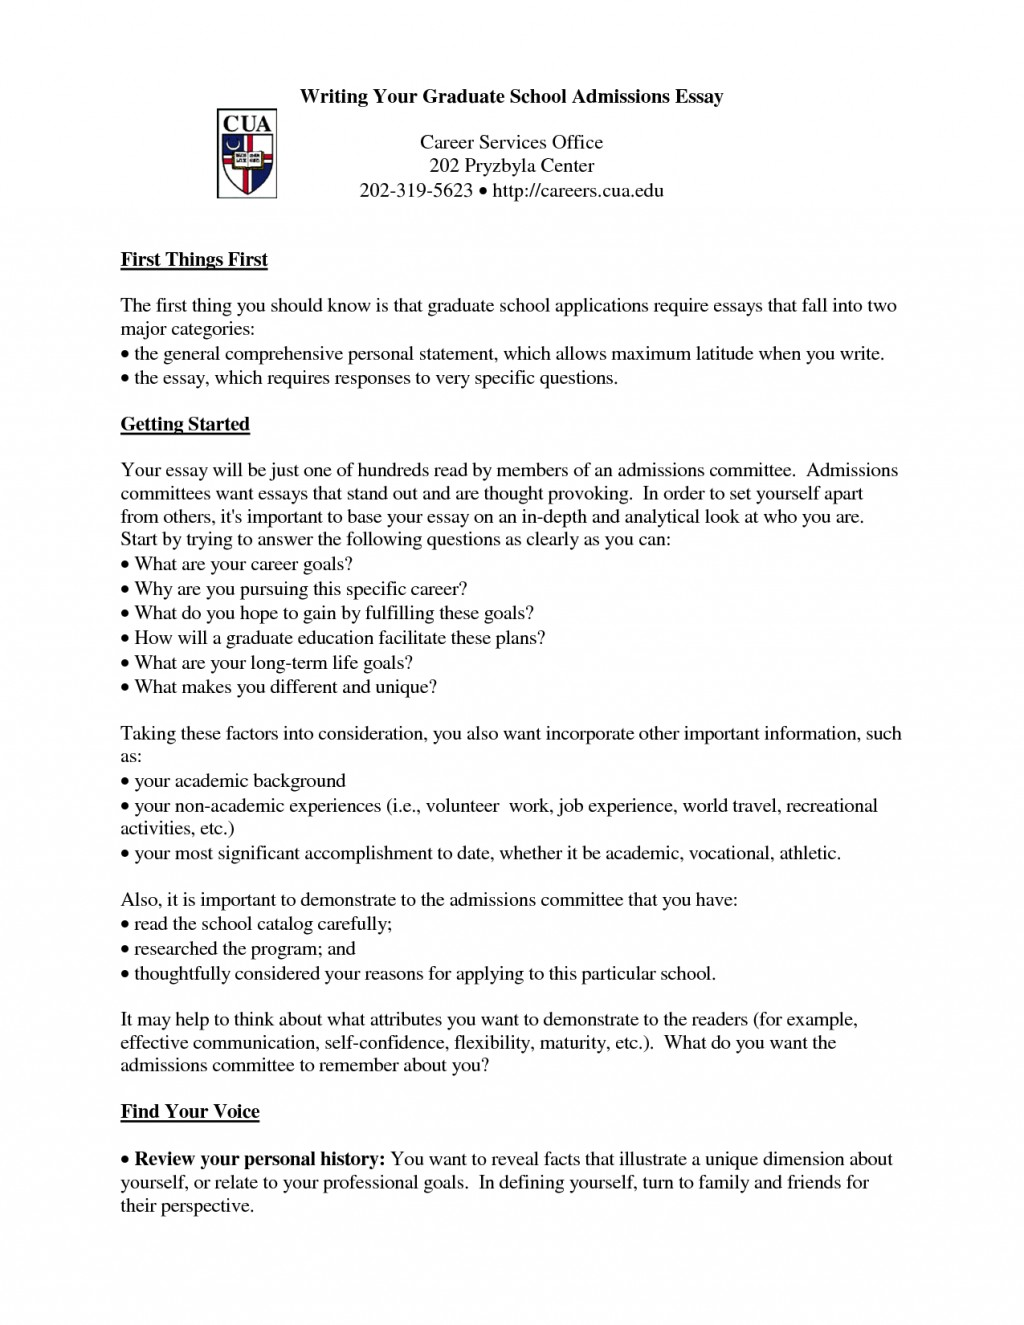 003 Essay For Master Degree Application Example Rare Sample Pdf Large